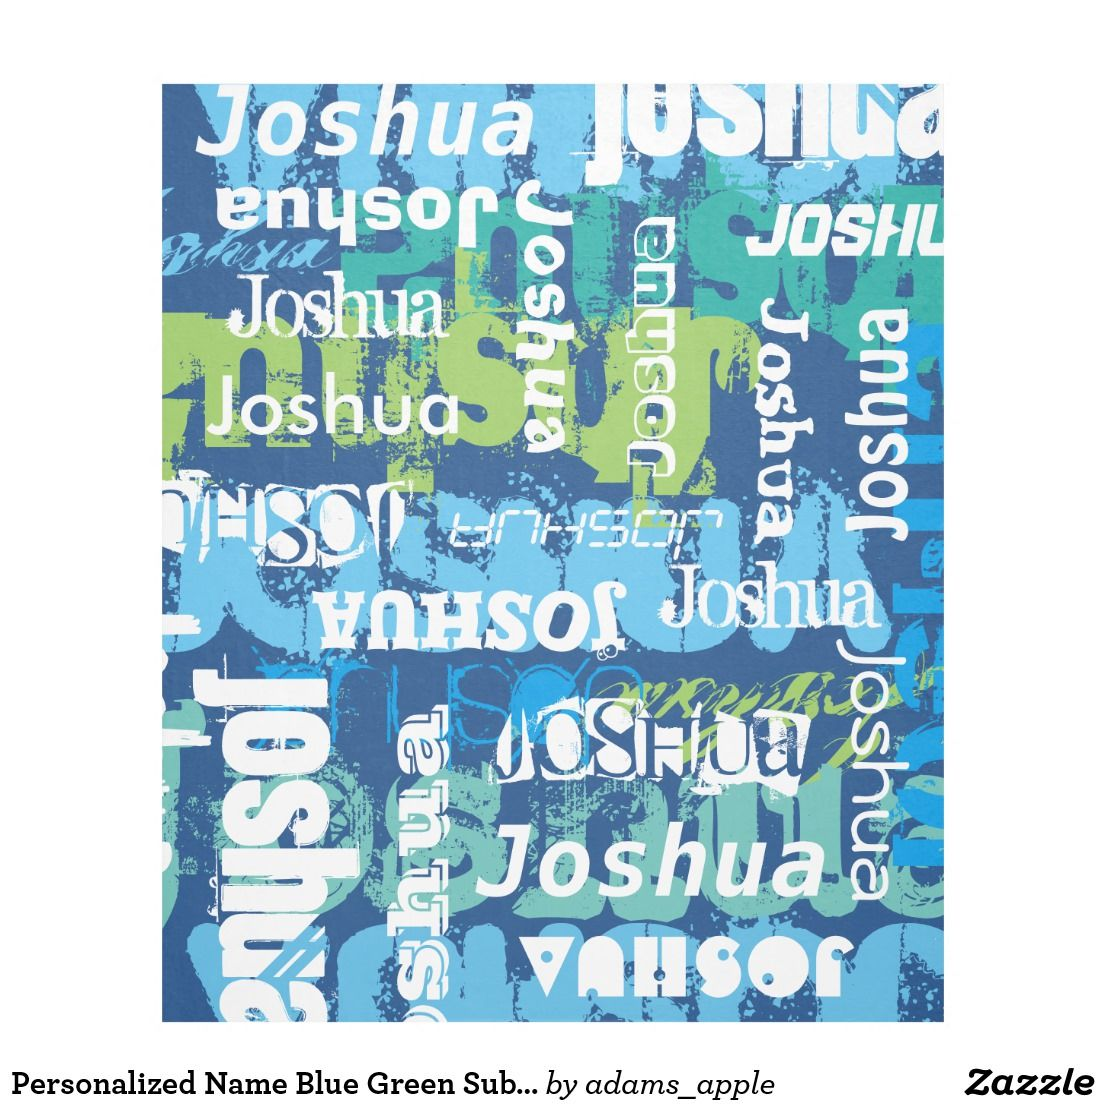 Personalized Name Blue Green Subway Art Fleece Blanket Zazzle Com